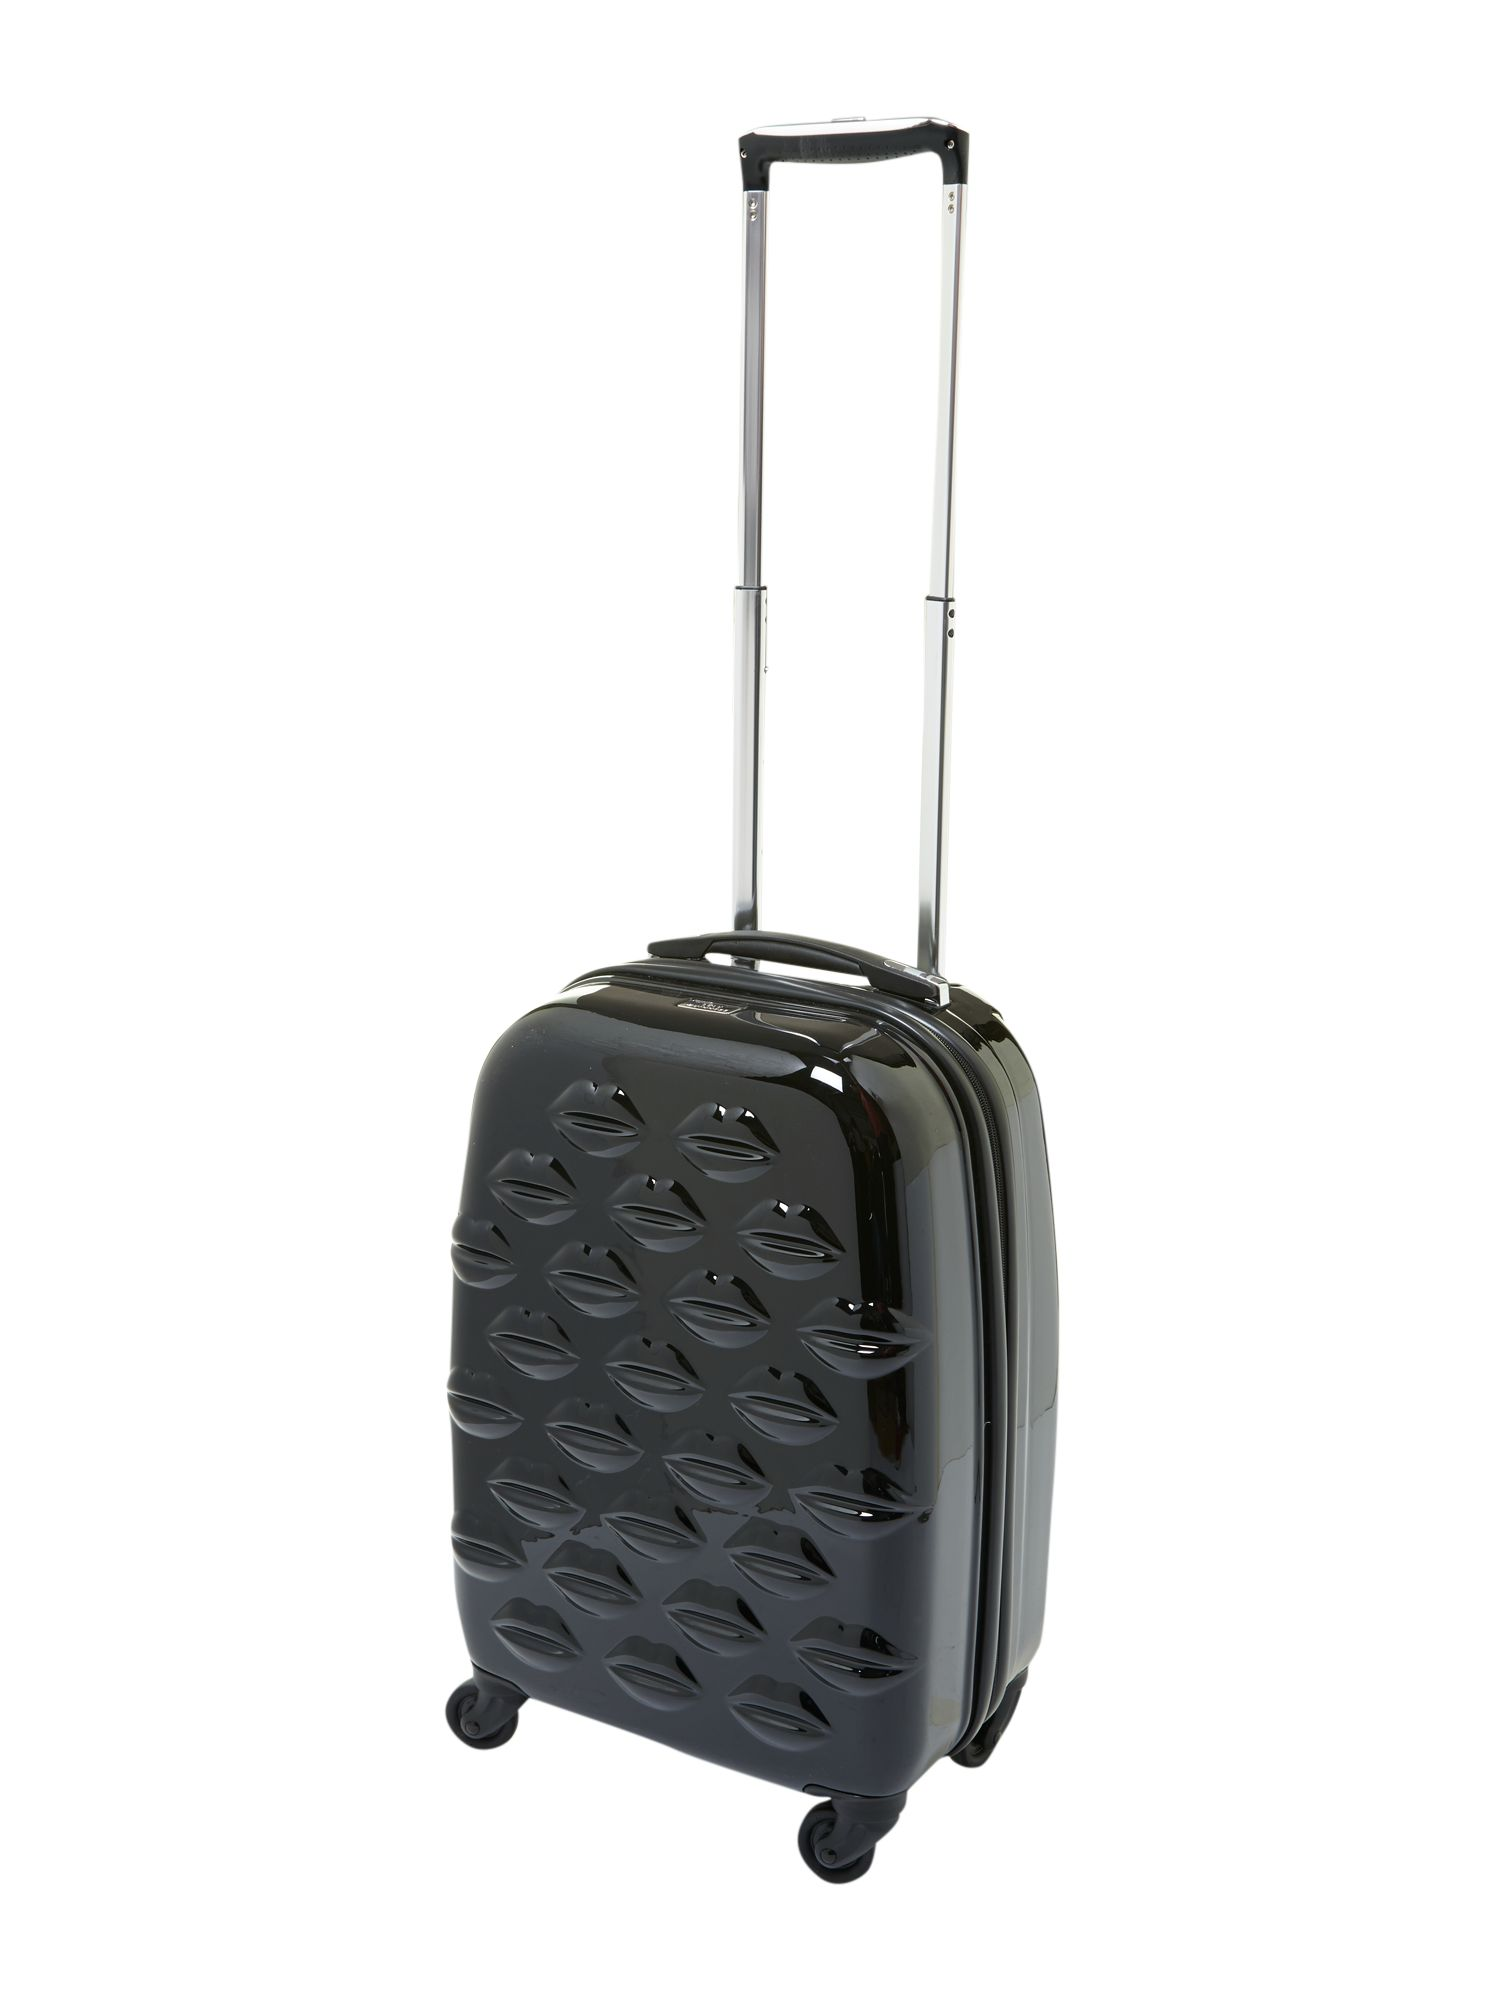 Lulu Lips black 55cm 4 wheel case light weight